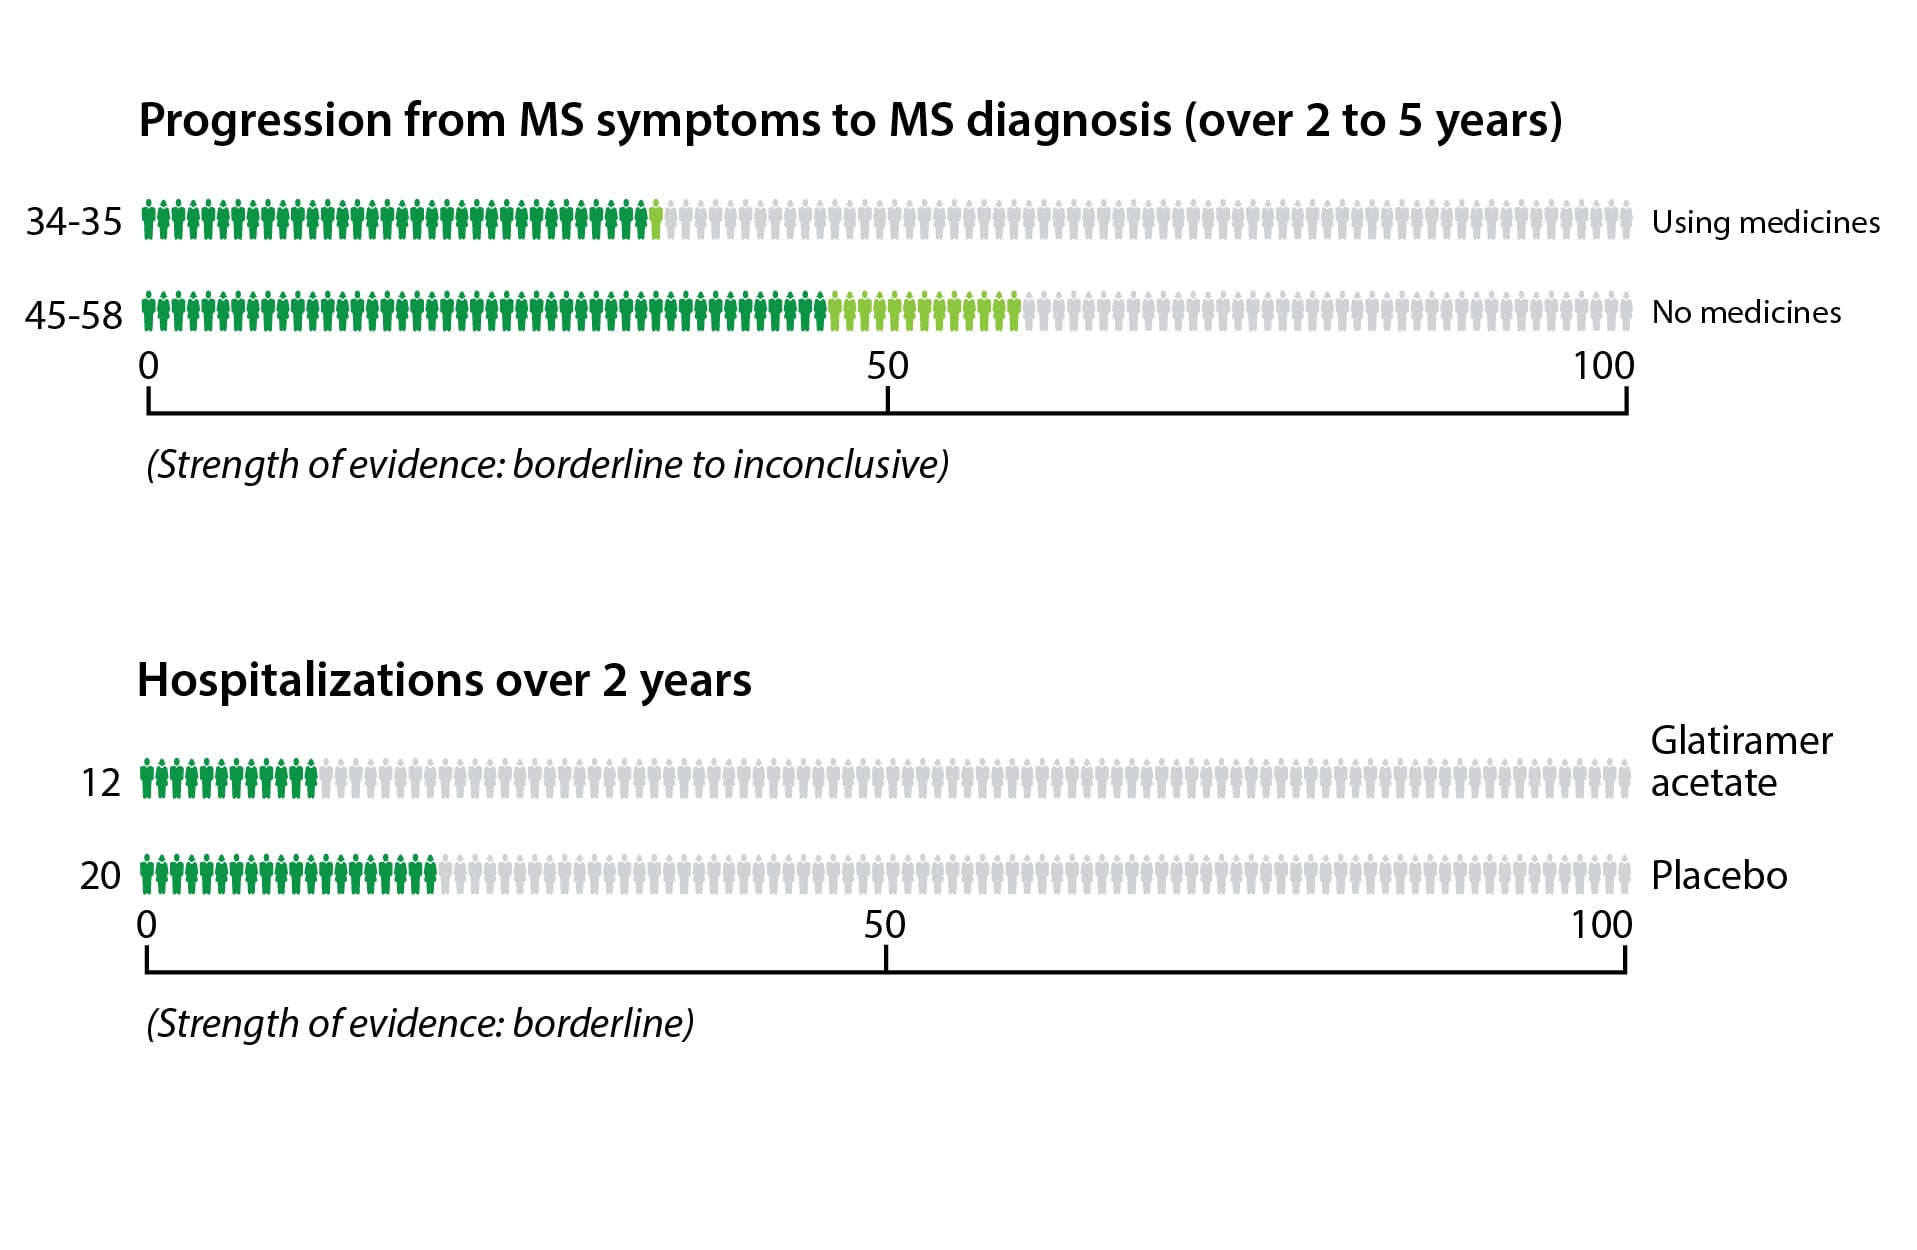 Out of 100 people who have had an MS-like episode but have not been diagnosed with MS, 45 to 58 out of 100 may progress to an MS diagnosis if they don't take medicines. If they do take medicines, 34 to 35 out of 100 may progress to an MS diagnosis. Out of 100 people taking glatiramer acetate, 12 will need to be hospitalized at some point during a 2-year period, compared to 20 people out of 100 who are taking a placebo.